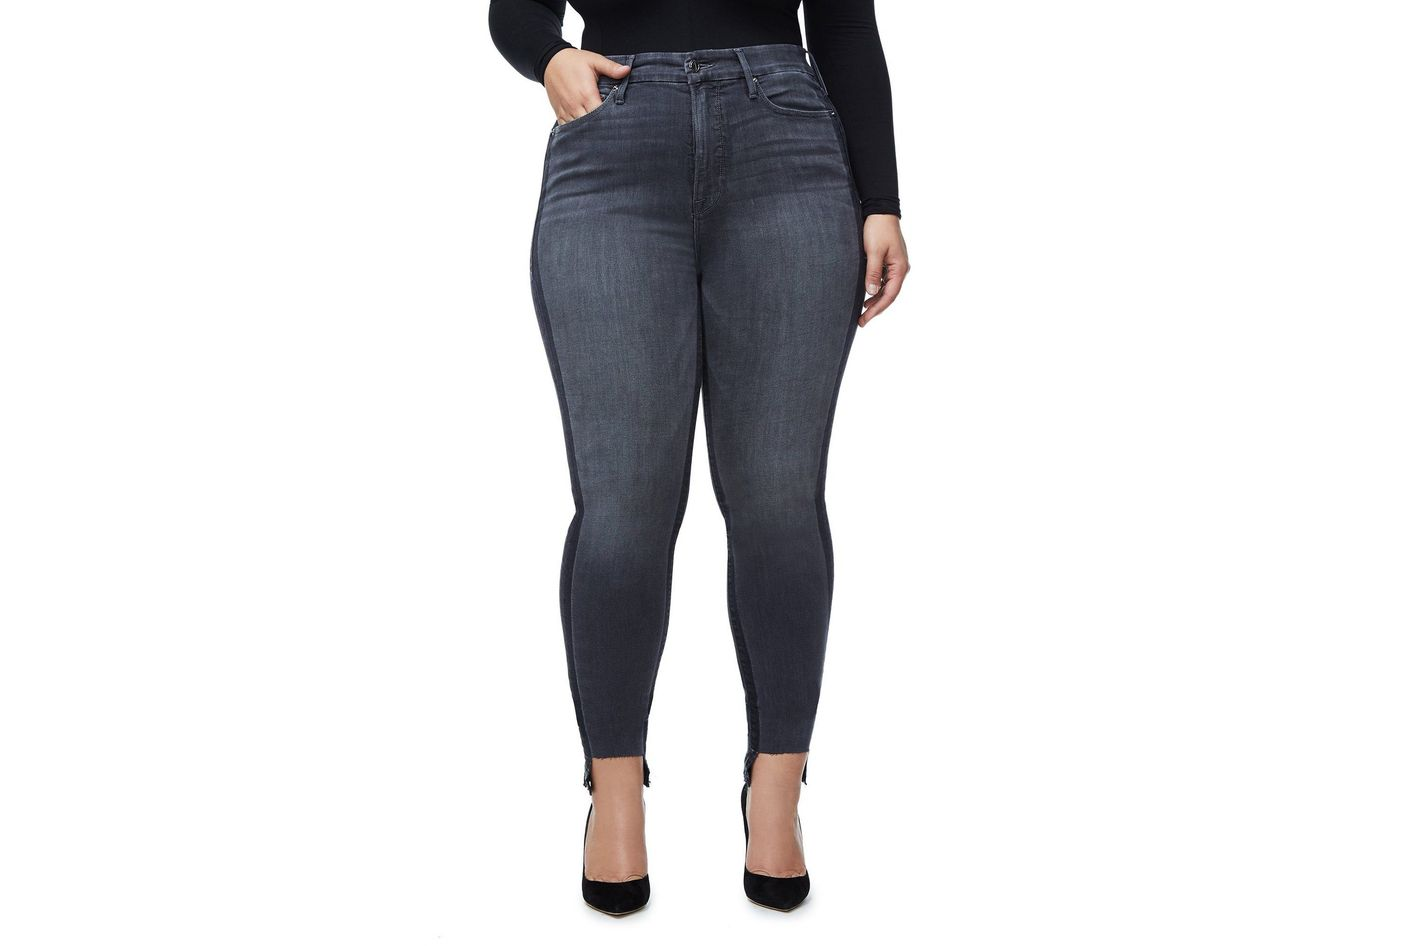 9c23790ef5 10 Best Plus-Size Jeans According to Real Women 2018